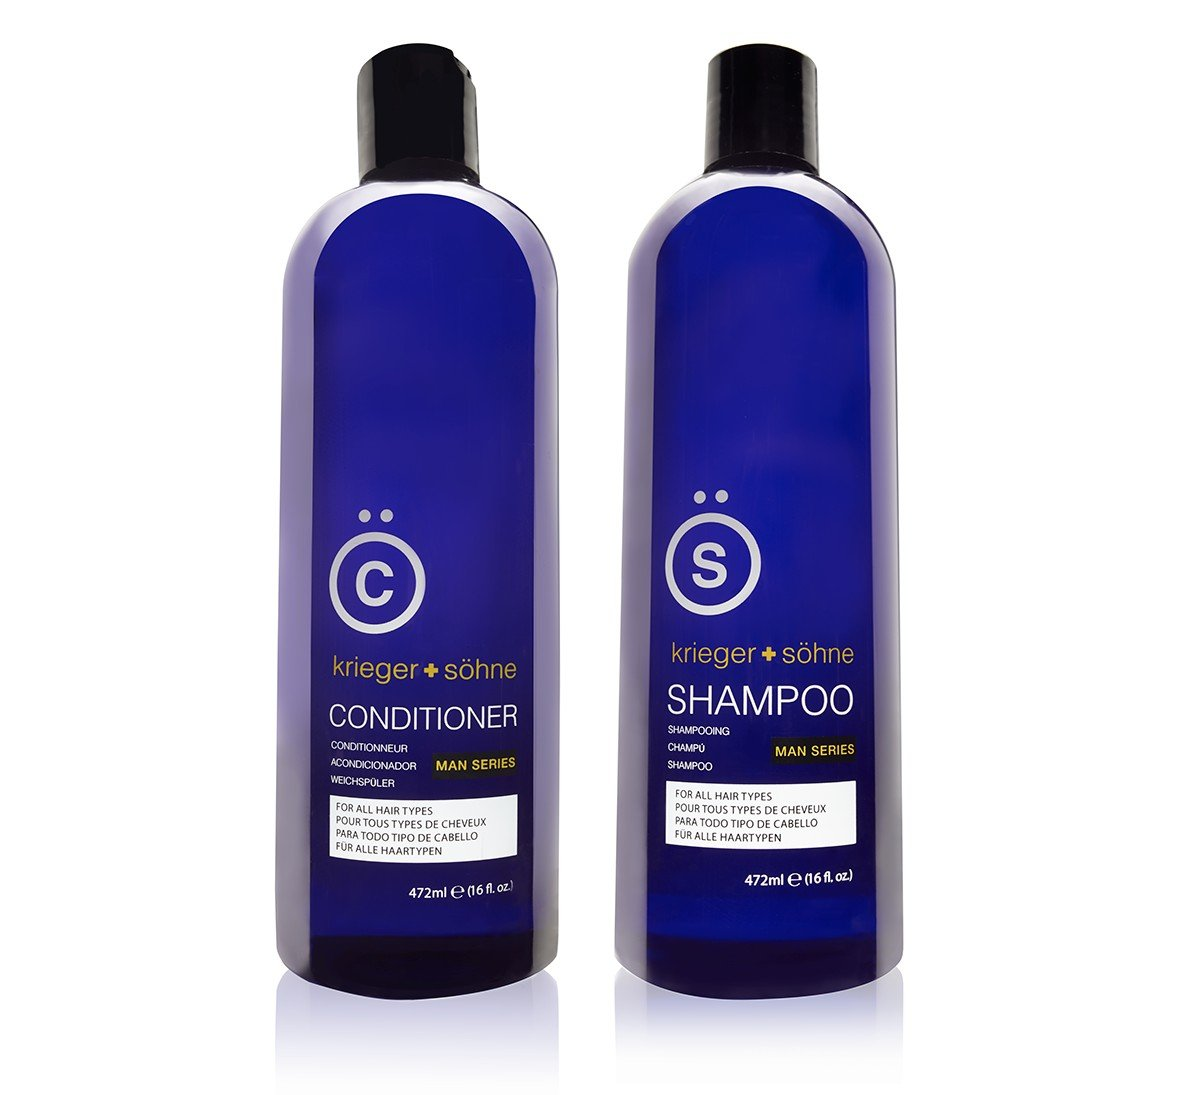 krieger + sohne shampoo and conditioner